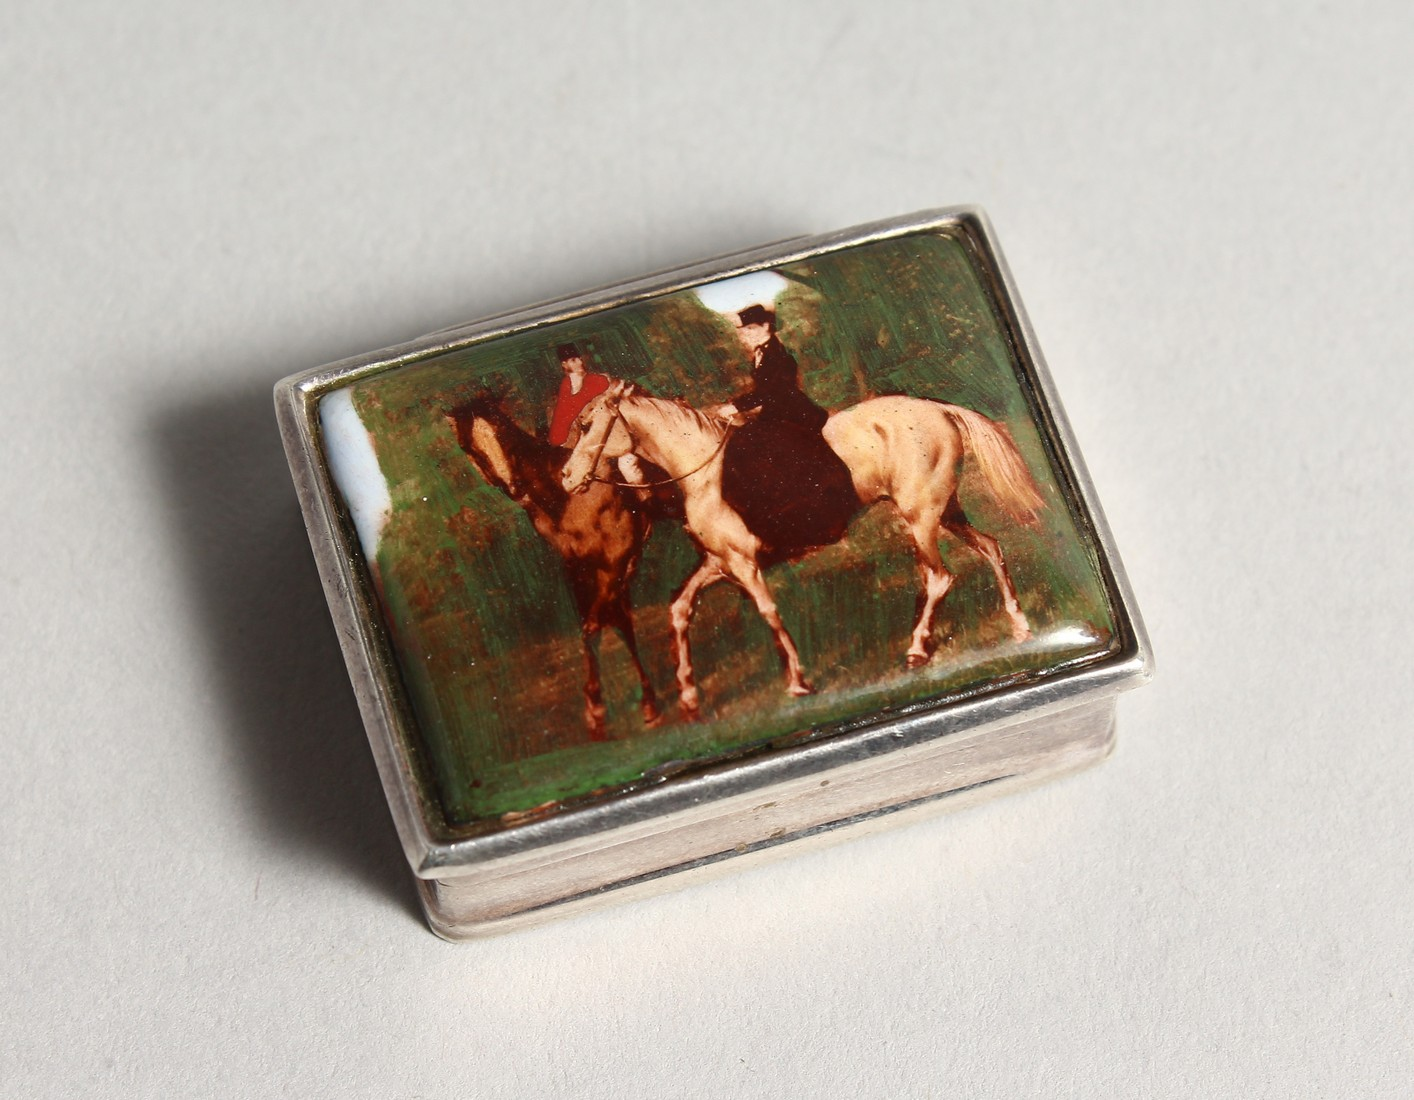 A SILVER AND ENAMEL SNUFF BOX, the lid decorated with figures on horseback. 1.5ins wide